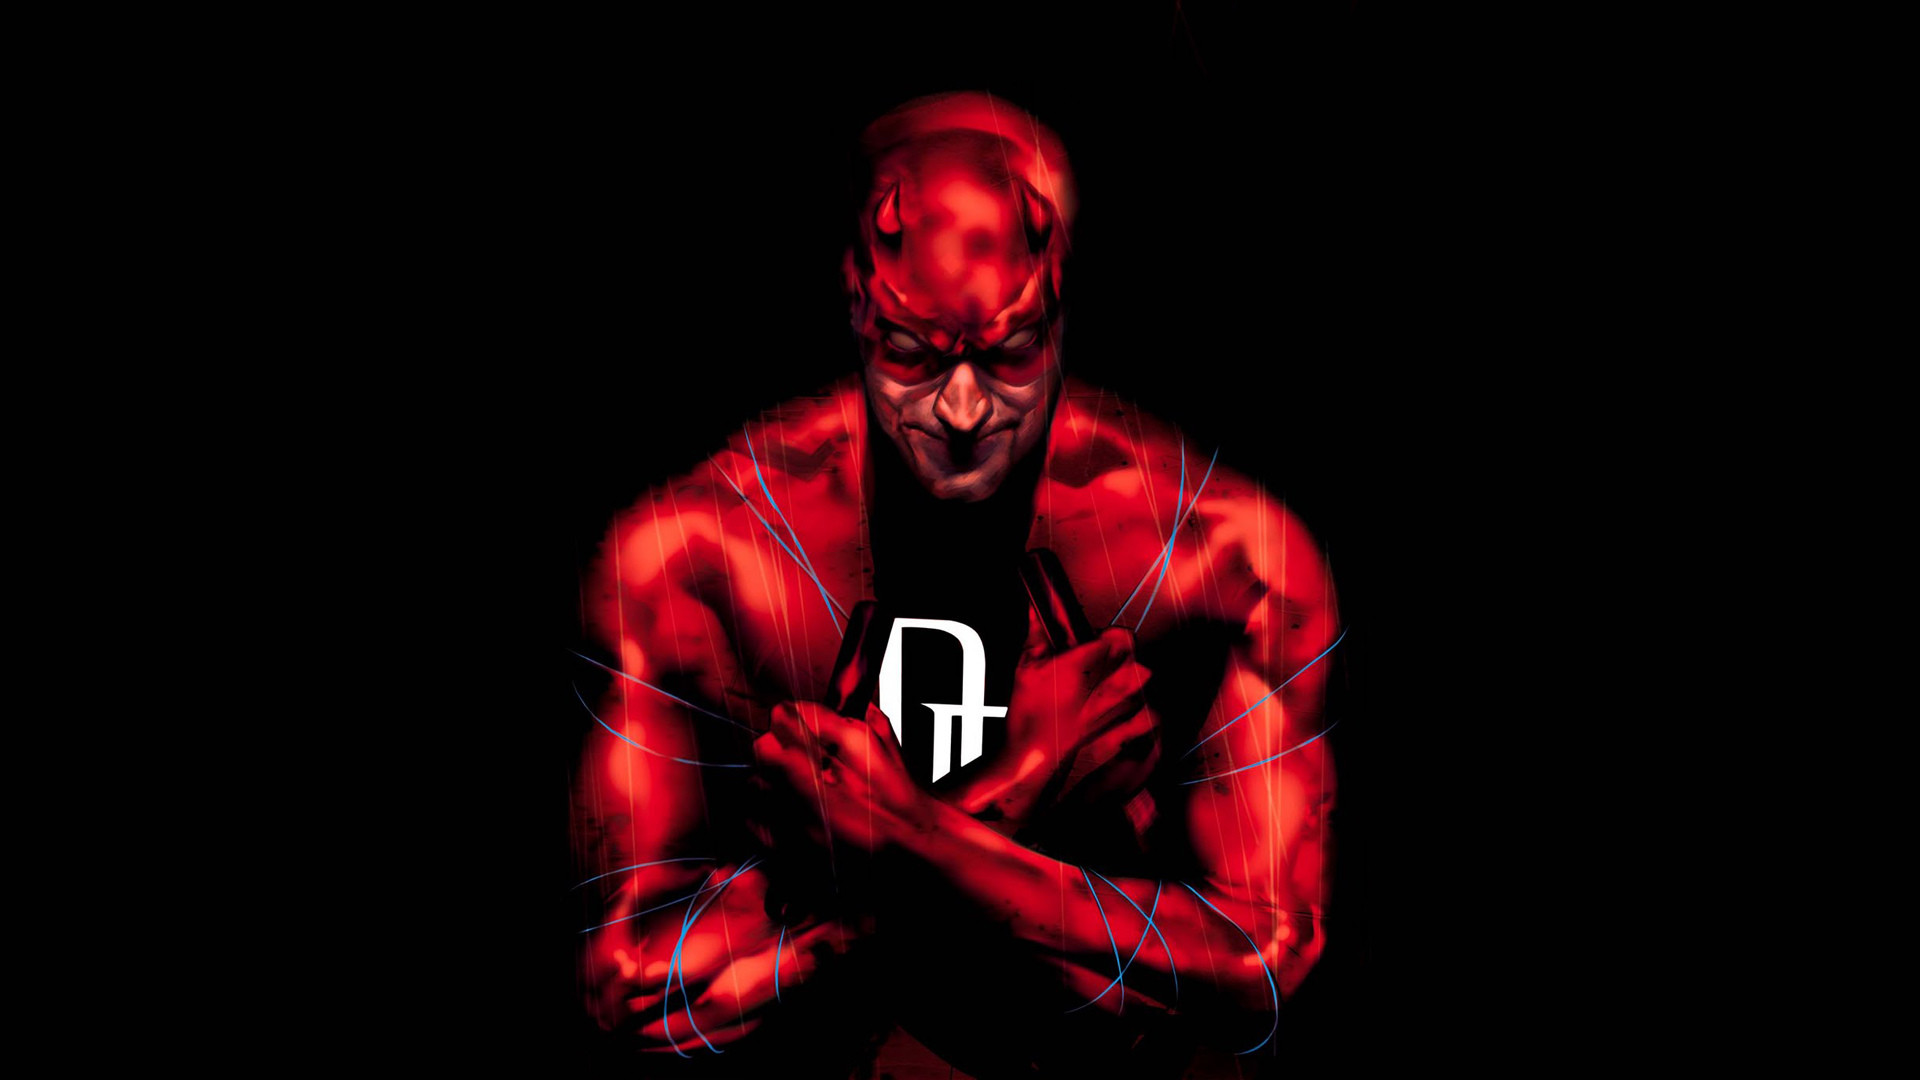 Res: 1920x1080, Daredevil Wallpapers Desktop Background